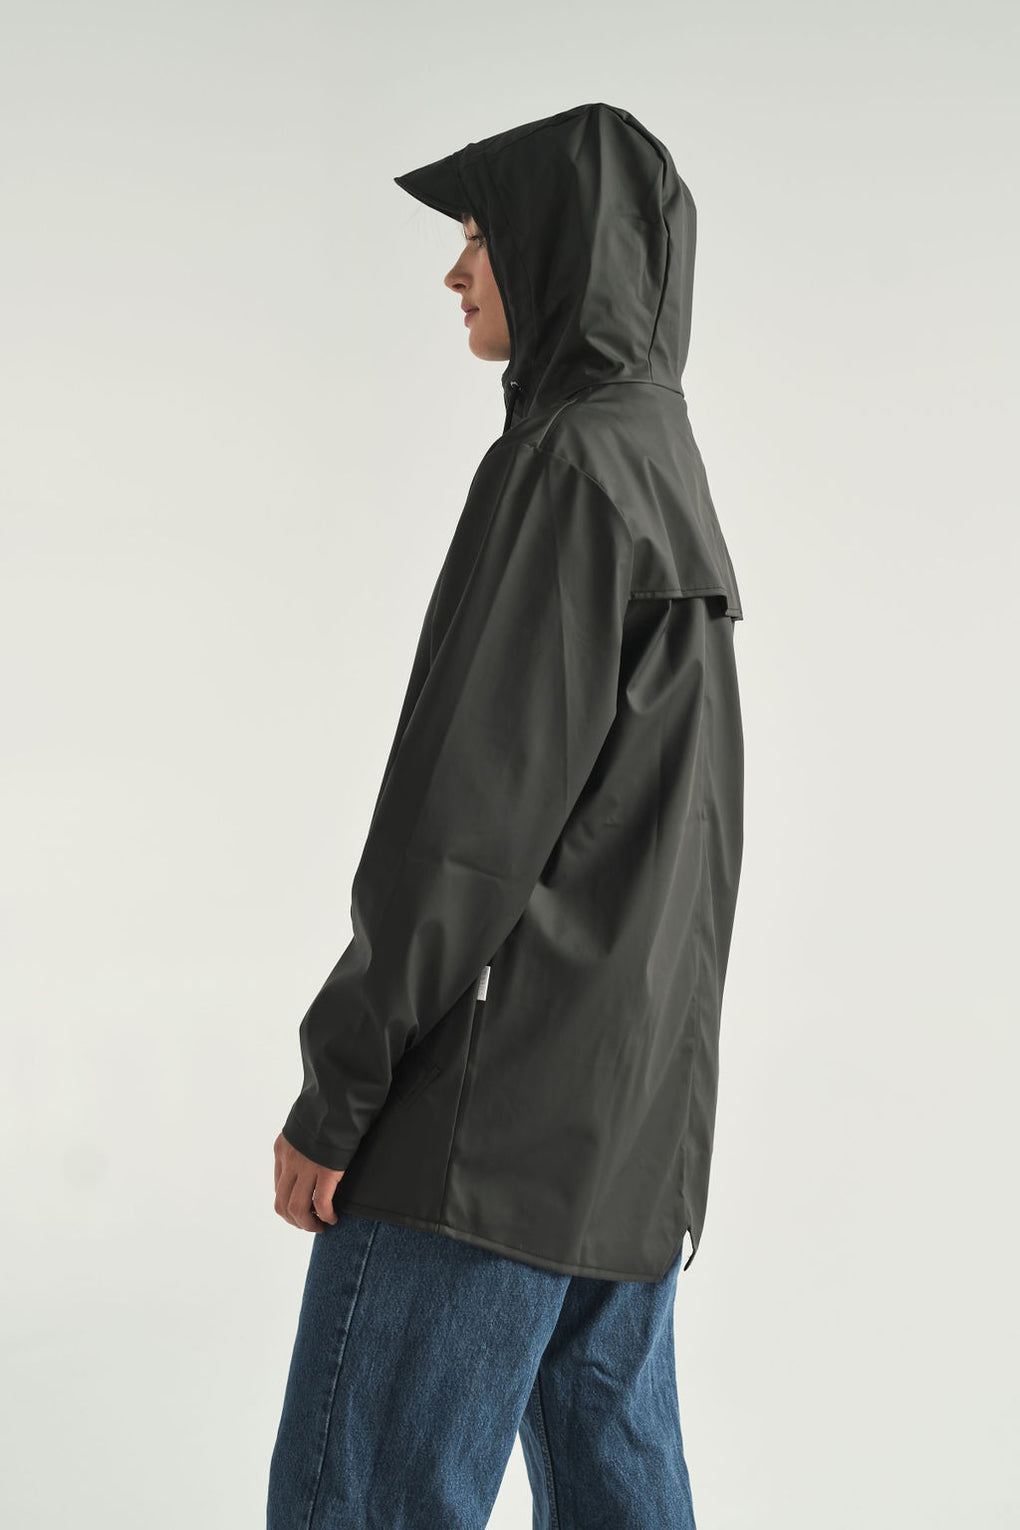 Rain Jacket in Black